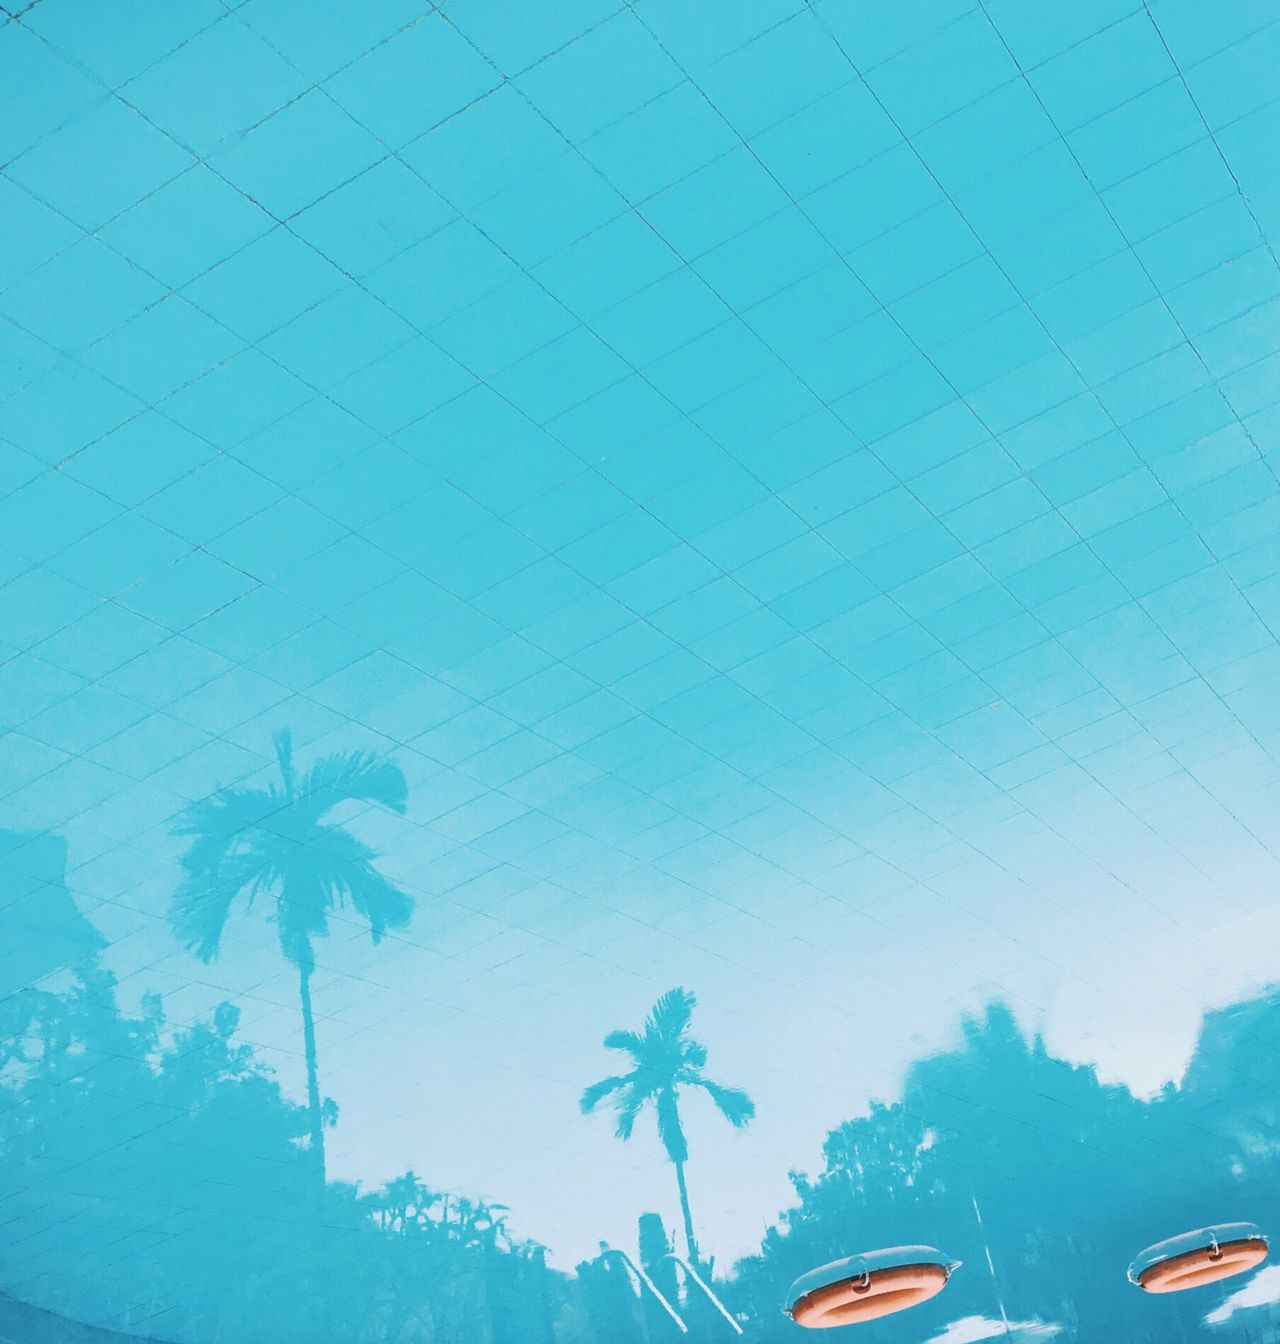 Blue Low Angle View Architecture Built Structure No People Day Outdoors IPhoneography Pool Reflection Light And Shadow Travel Danang Vietnam Palm Tree Calm Upside Down Holiday Resort Vacation